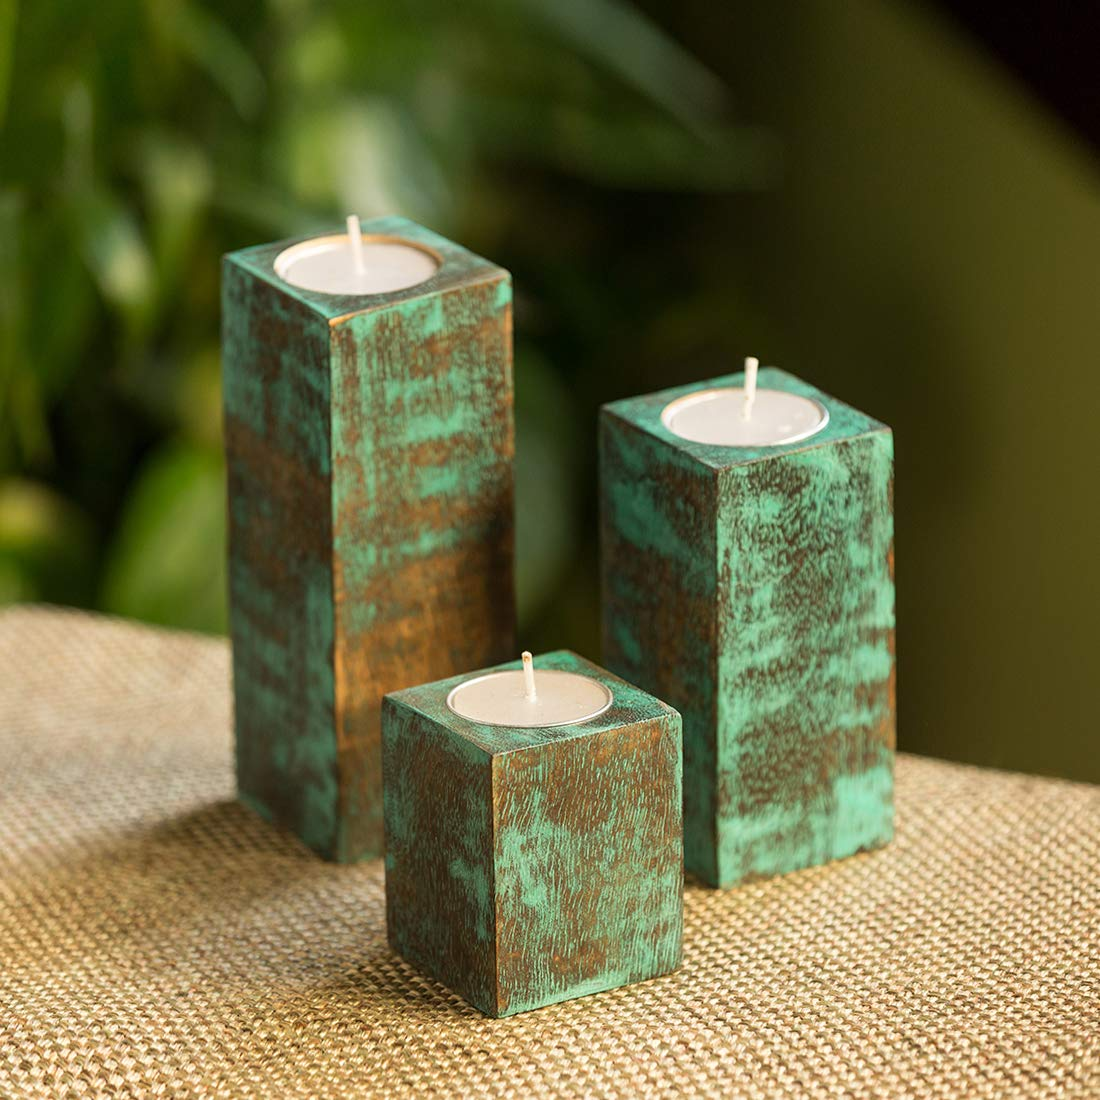 Buy Exclusivelane Teal Blocks Antique Finish Tea Light Holders In Mango Wood Set Of 3 Candle Holders For Home Décor Tealight Stand Tealight Holder Candle Stand For Home Decoration T Light